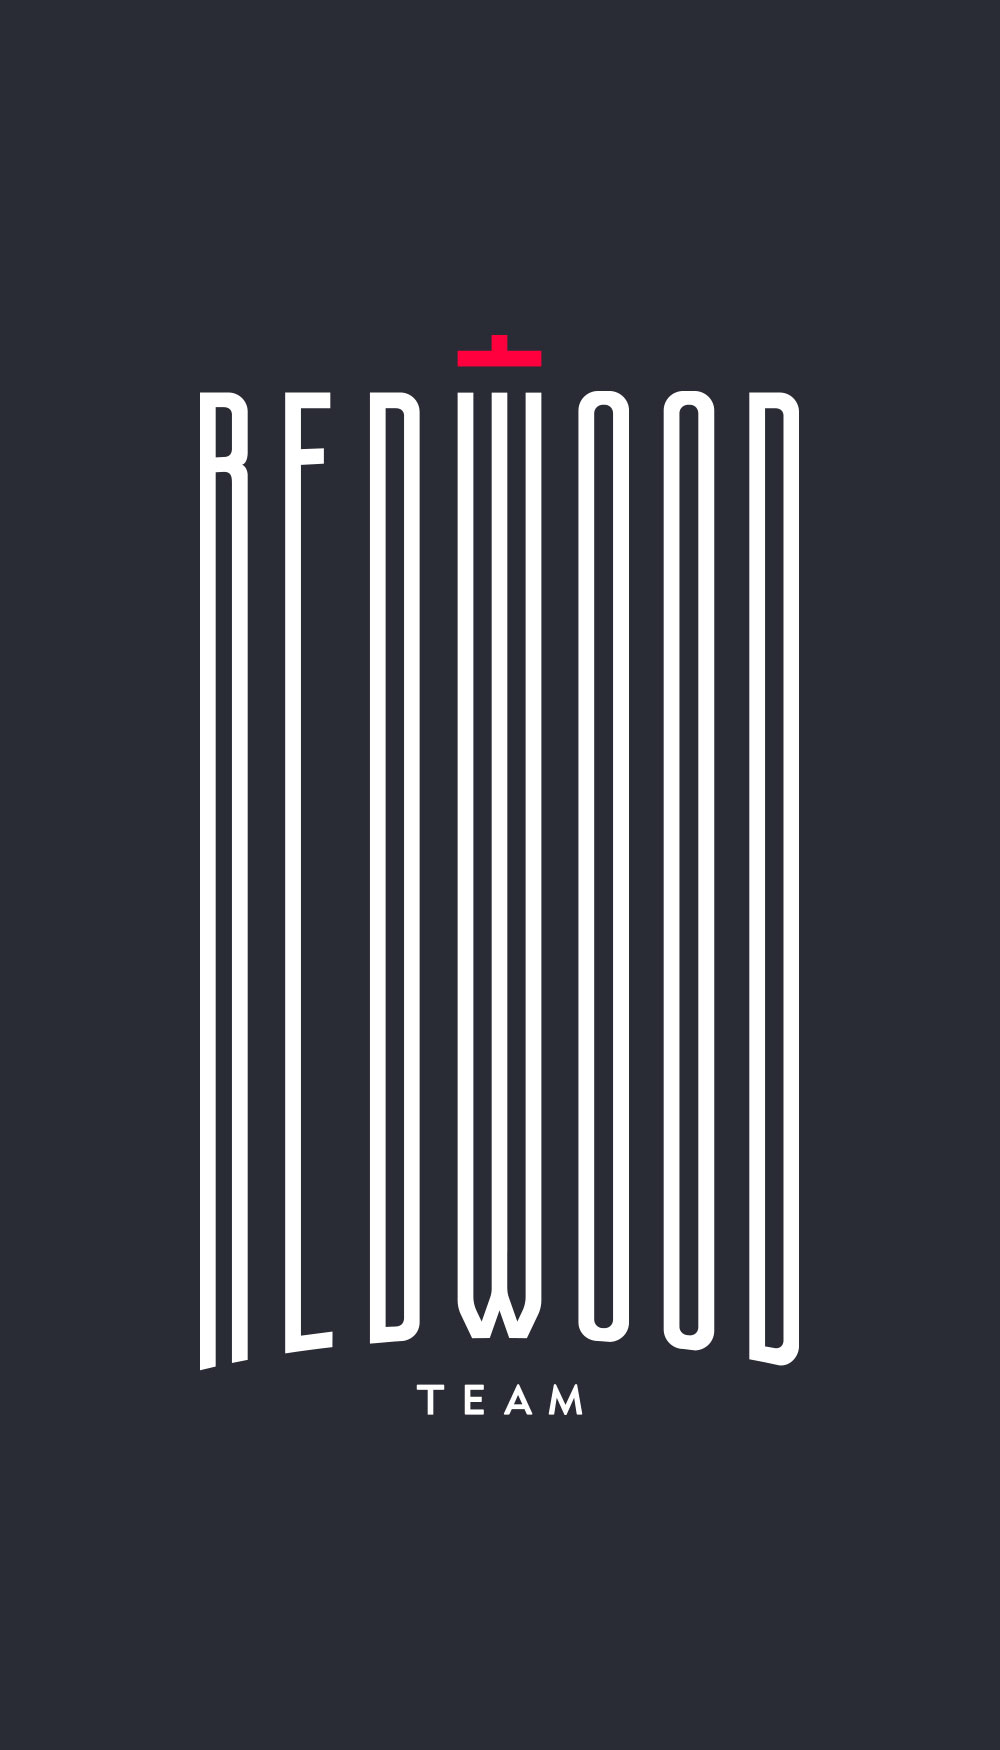 Redwood team